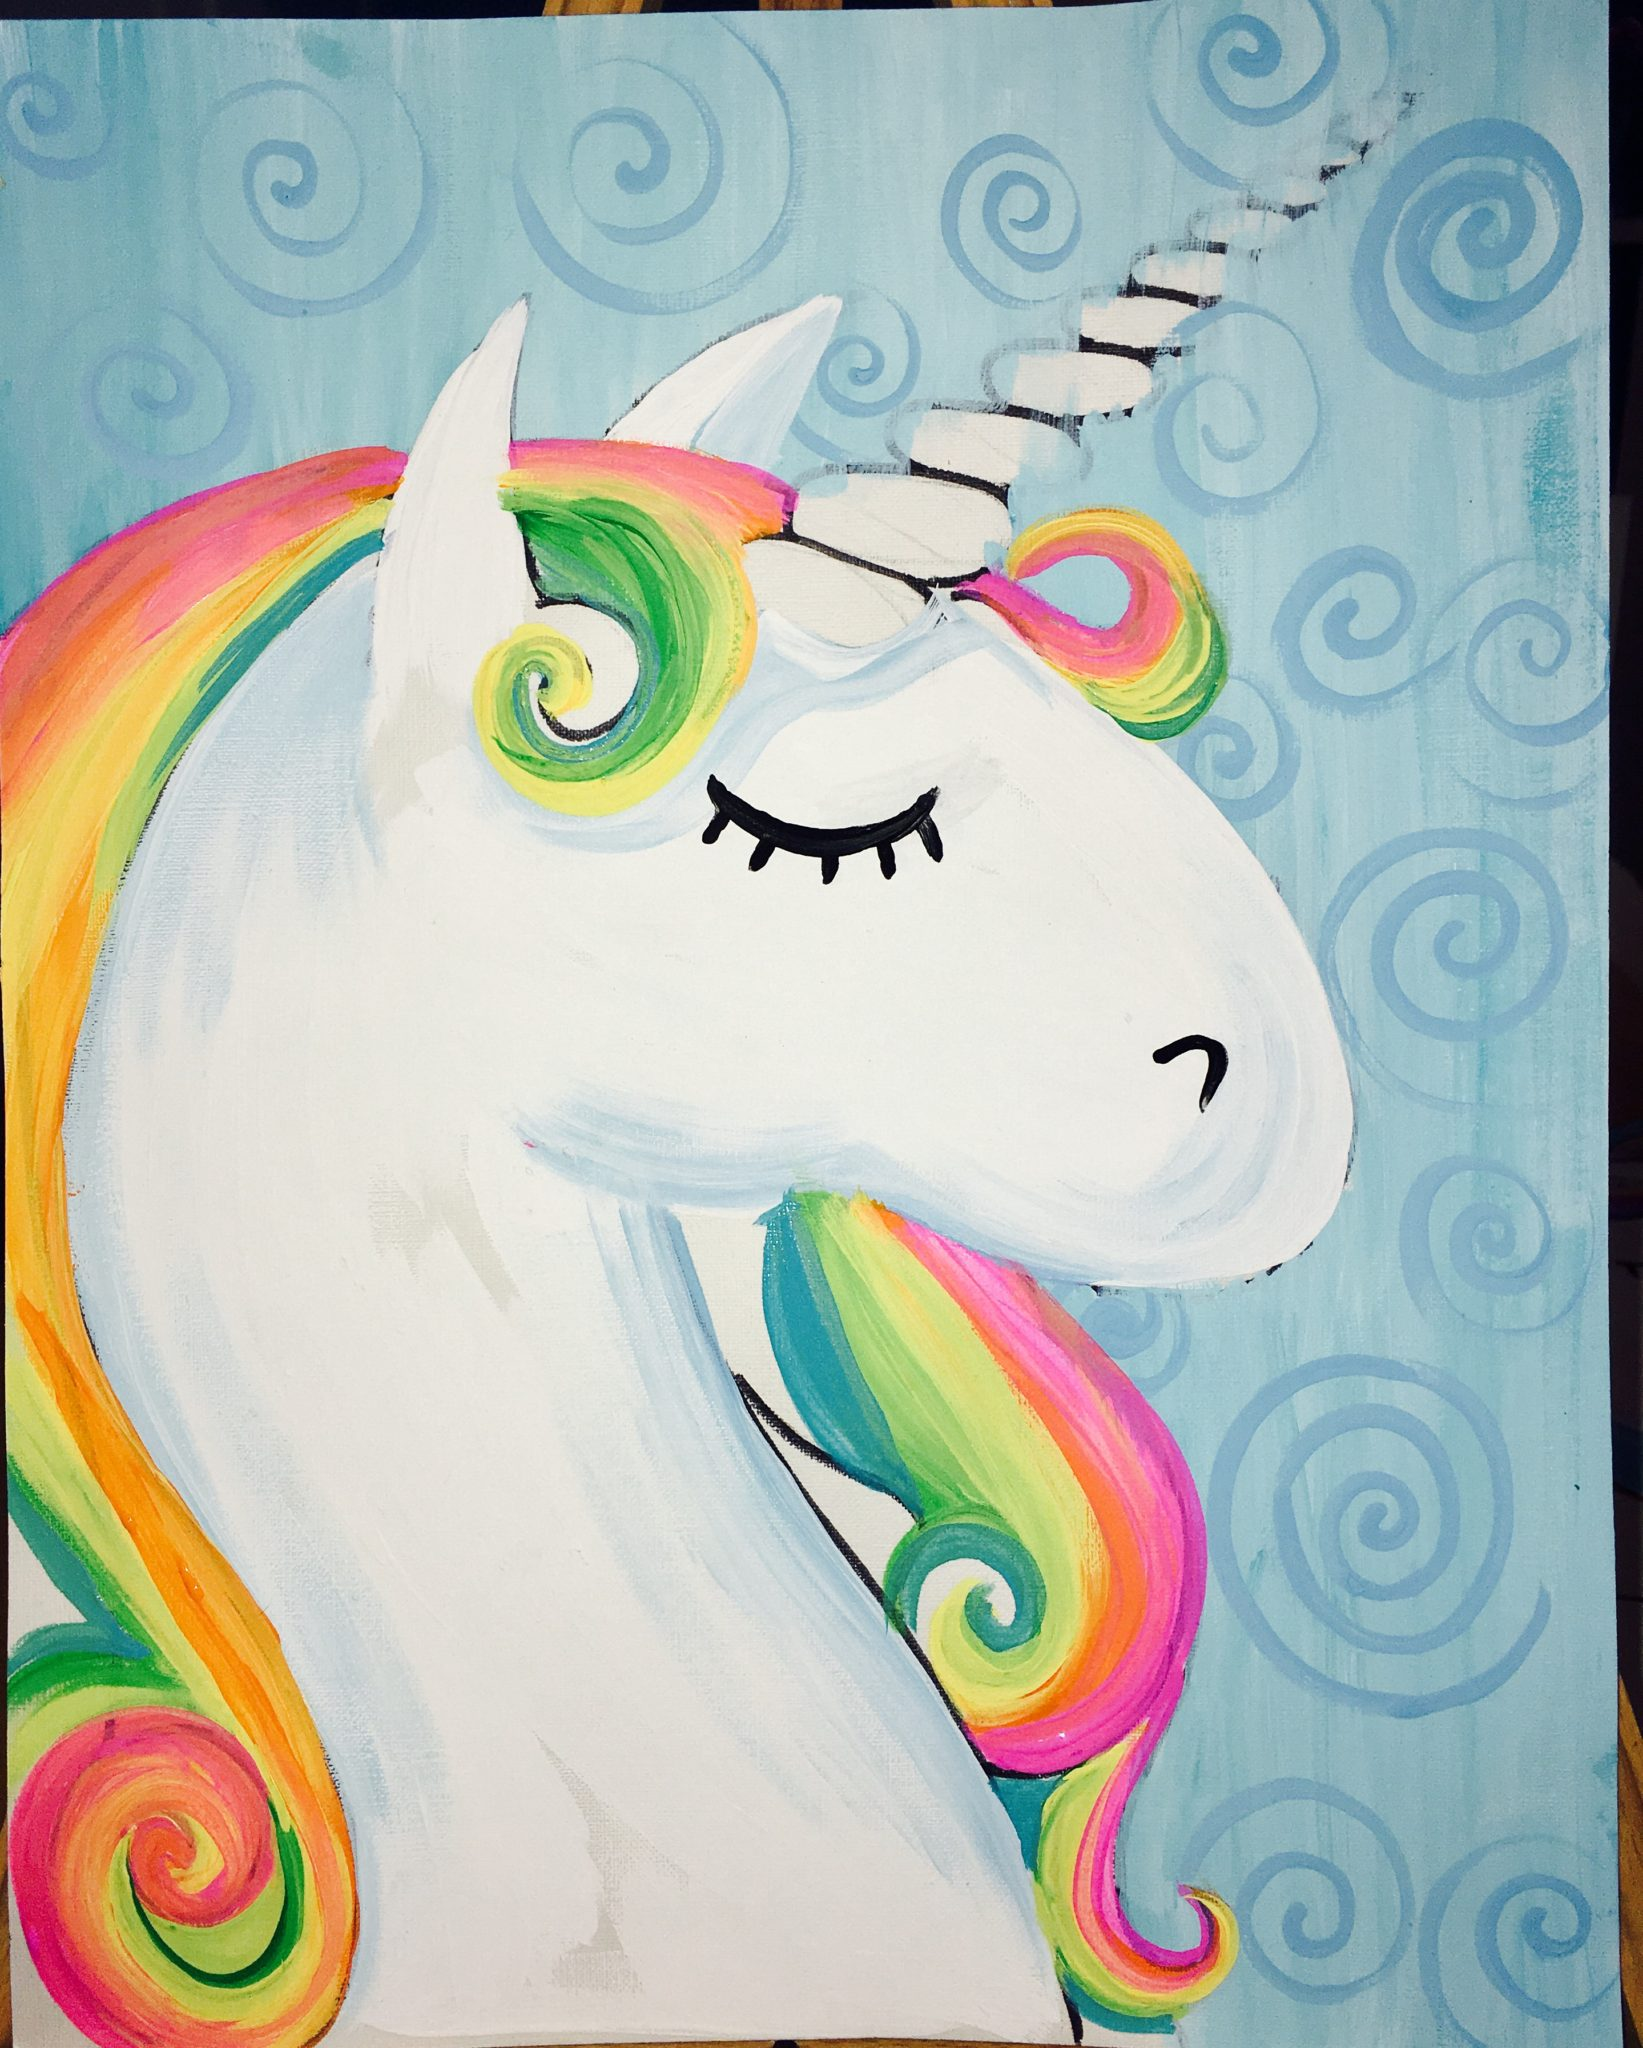 How To Paint A Rainbow Unicorn - Easy Step By Step Painting - photo#48